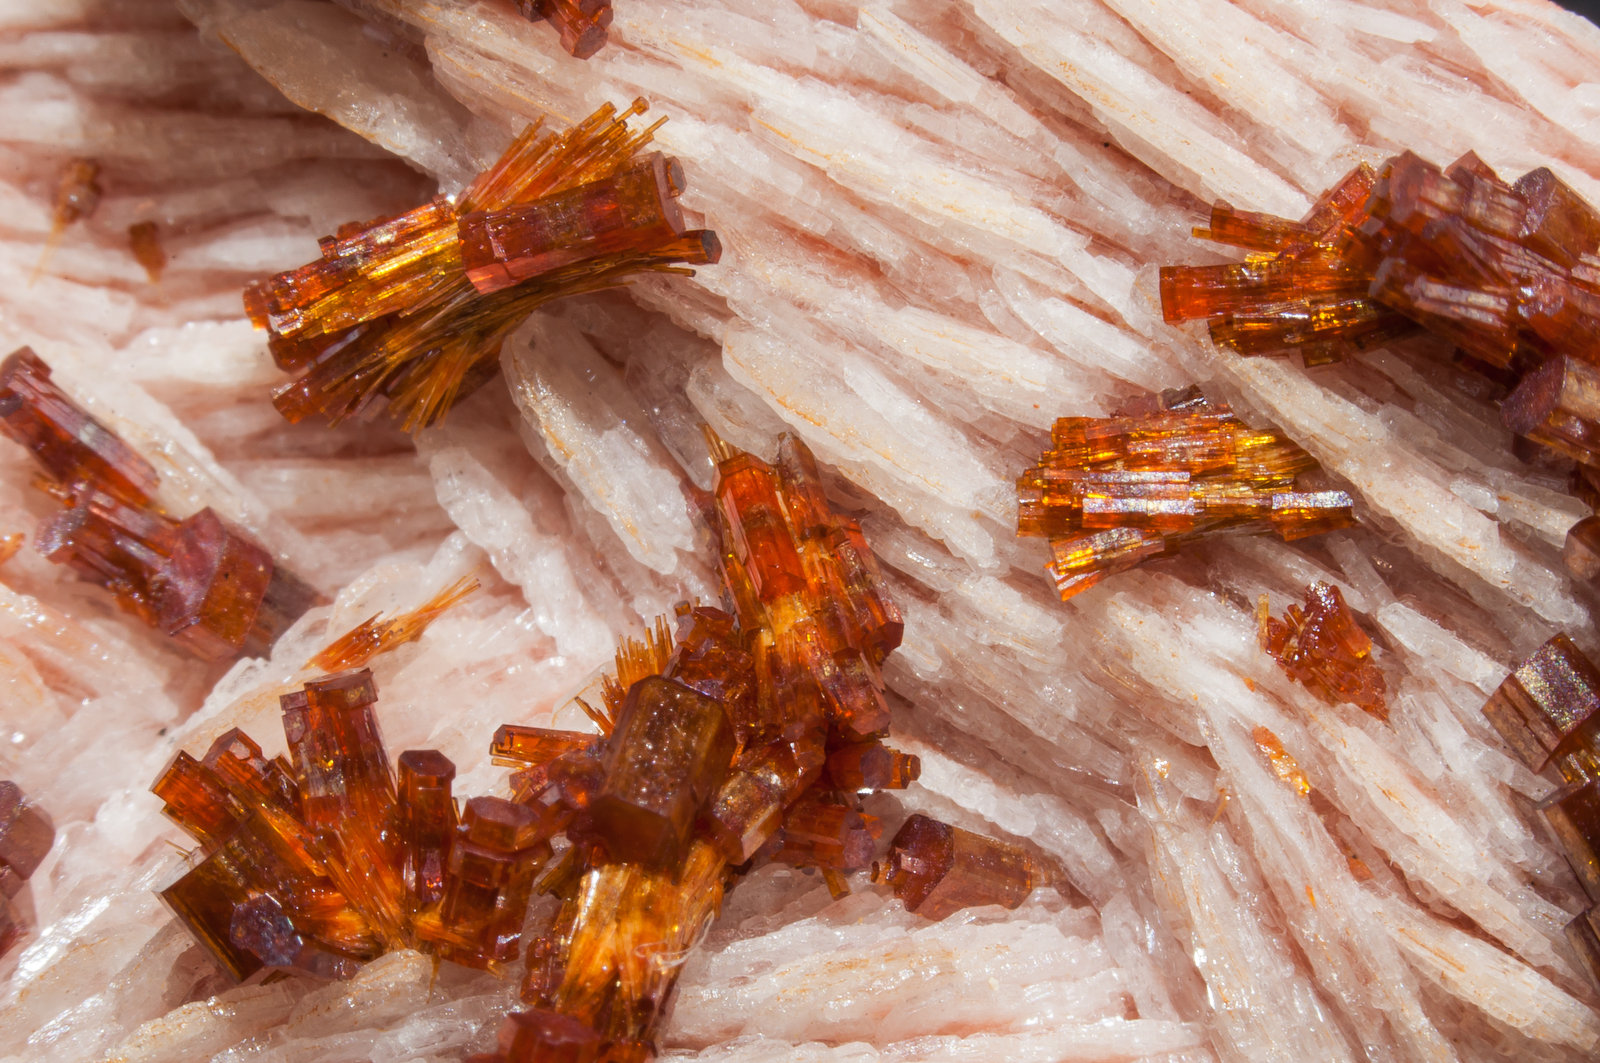 specimens/s_imagesAM0/Vanadinite-EF46AM0d.jpg